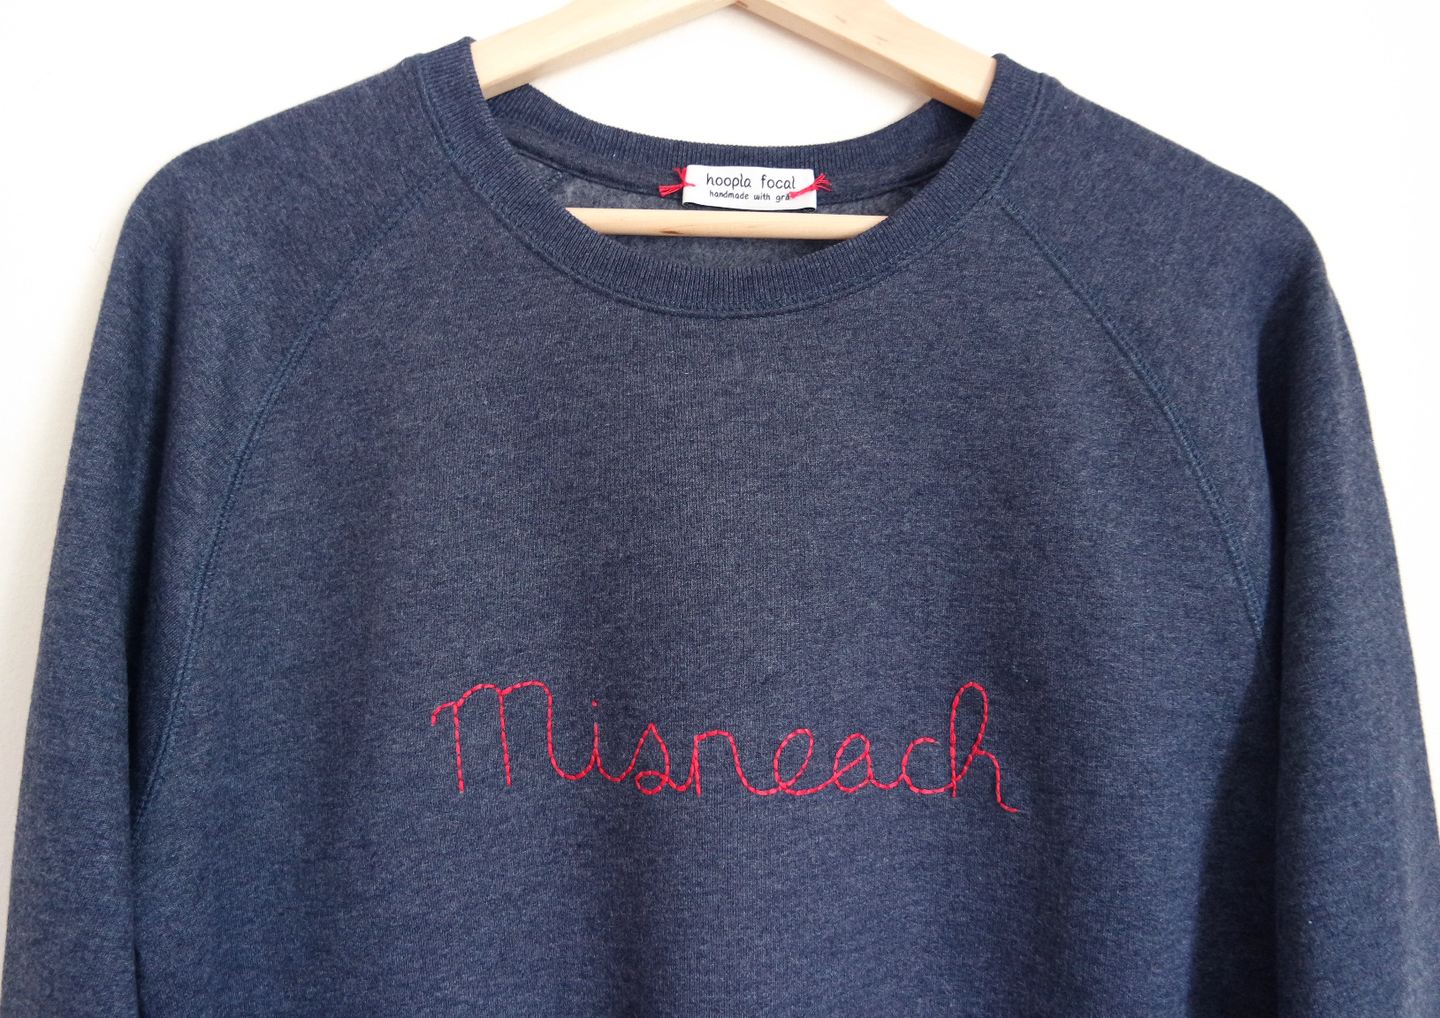 Courage sweatshirt in Irish. Misneach. Hand-embroidered in Dublin, Ireland by Hoopla Focal.